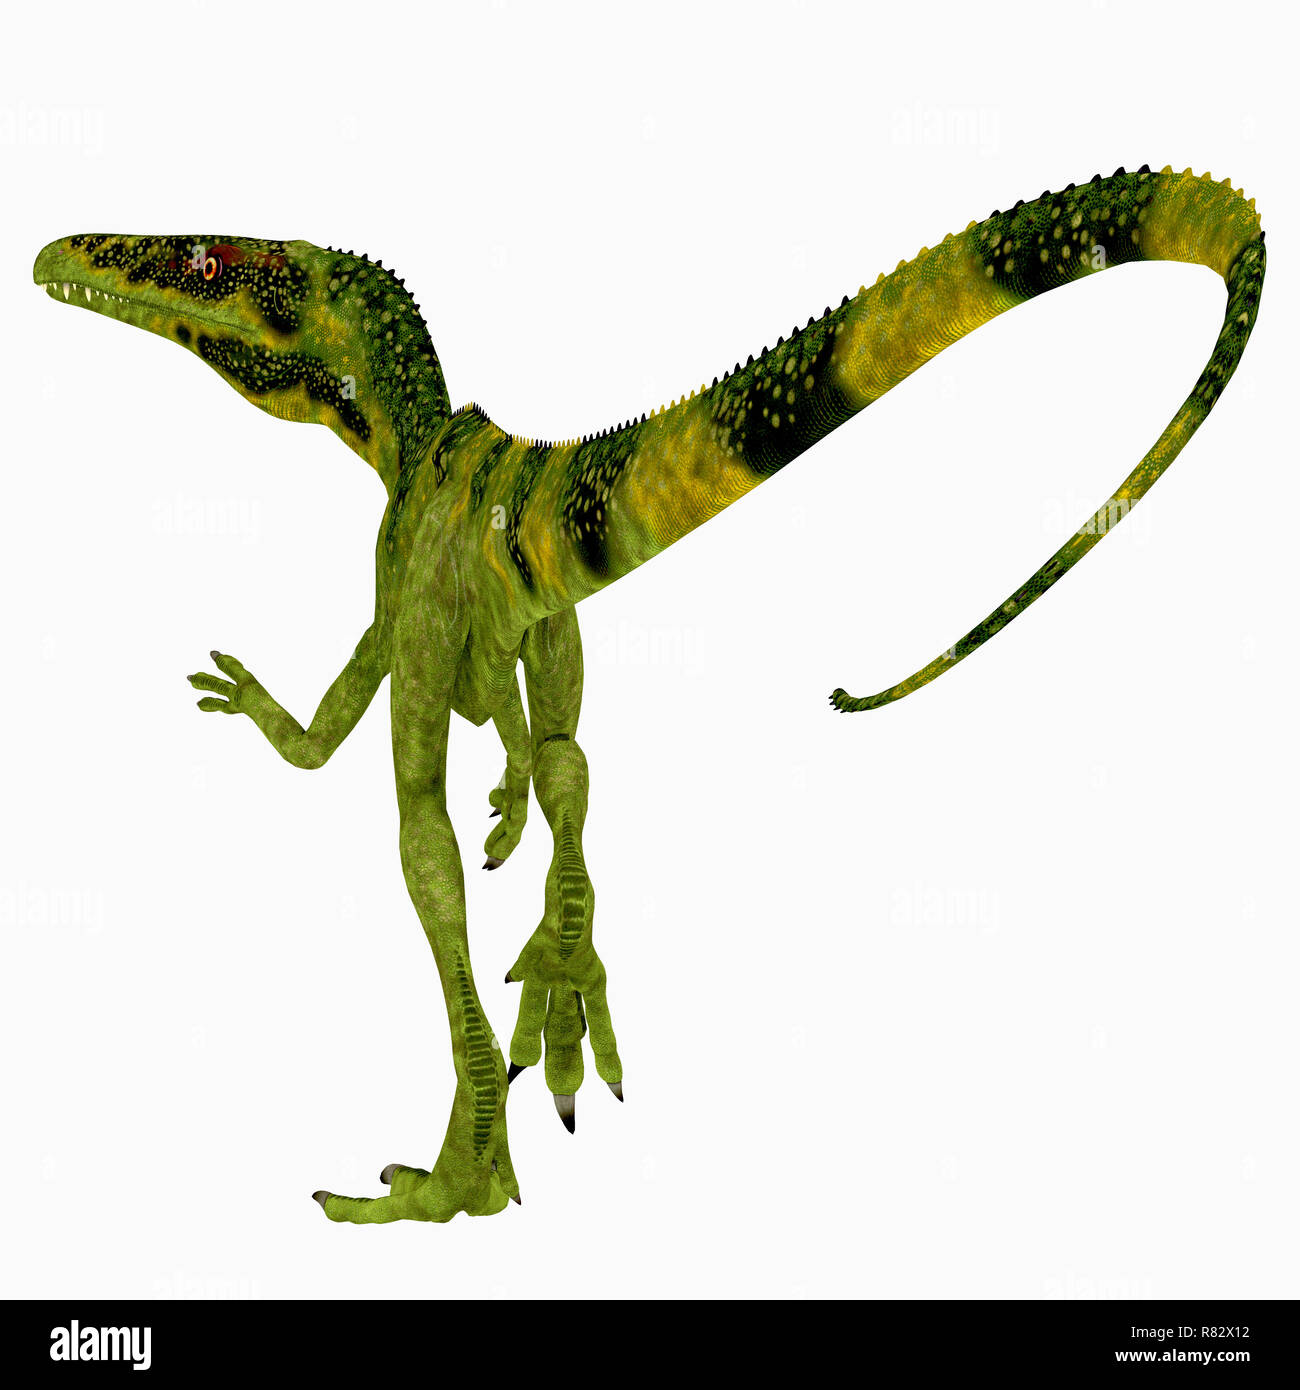 Juravenator Dinosaur Tail - Juravenator was a carnivorous theropod dinosaur that lived in Germany during the Jurassic Period. - Stock Image